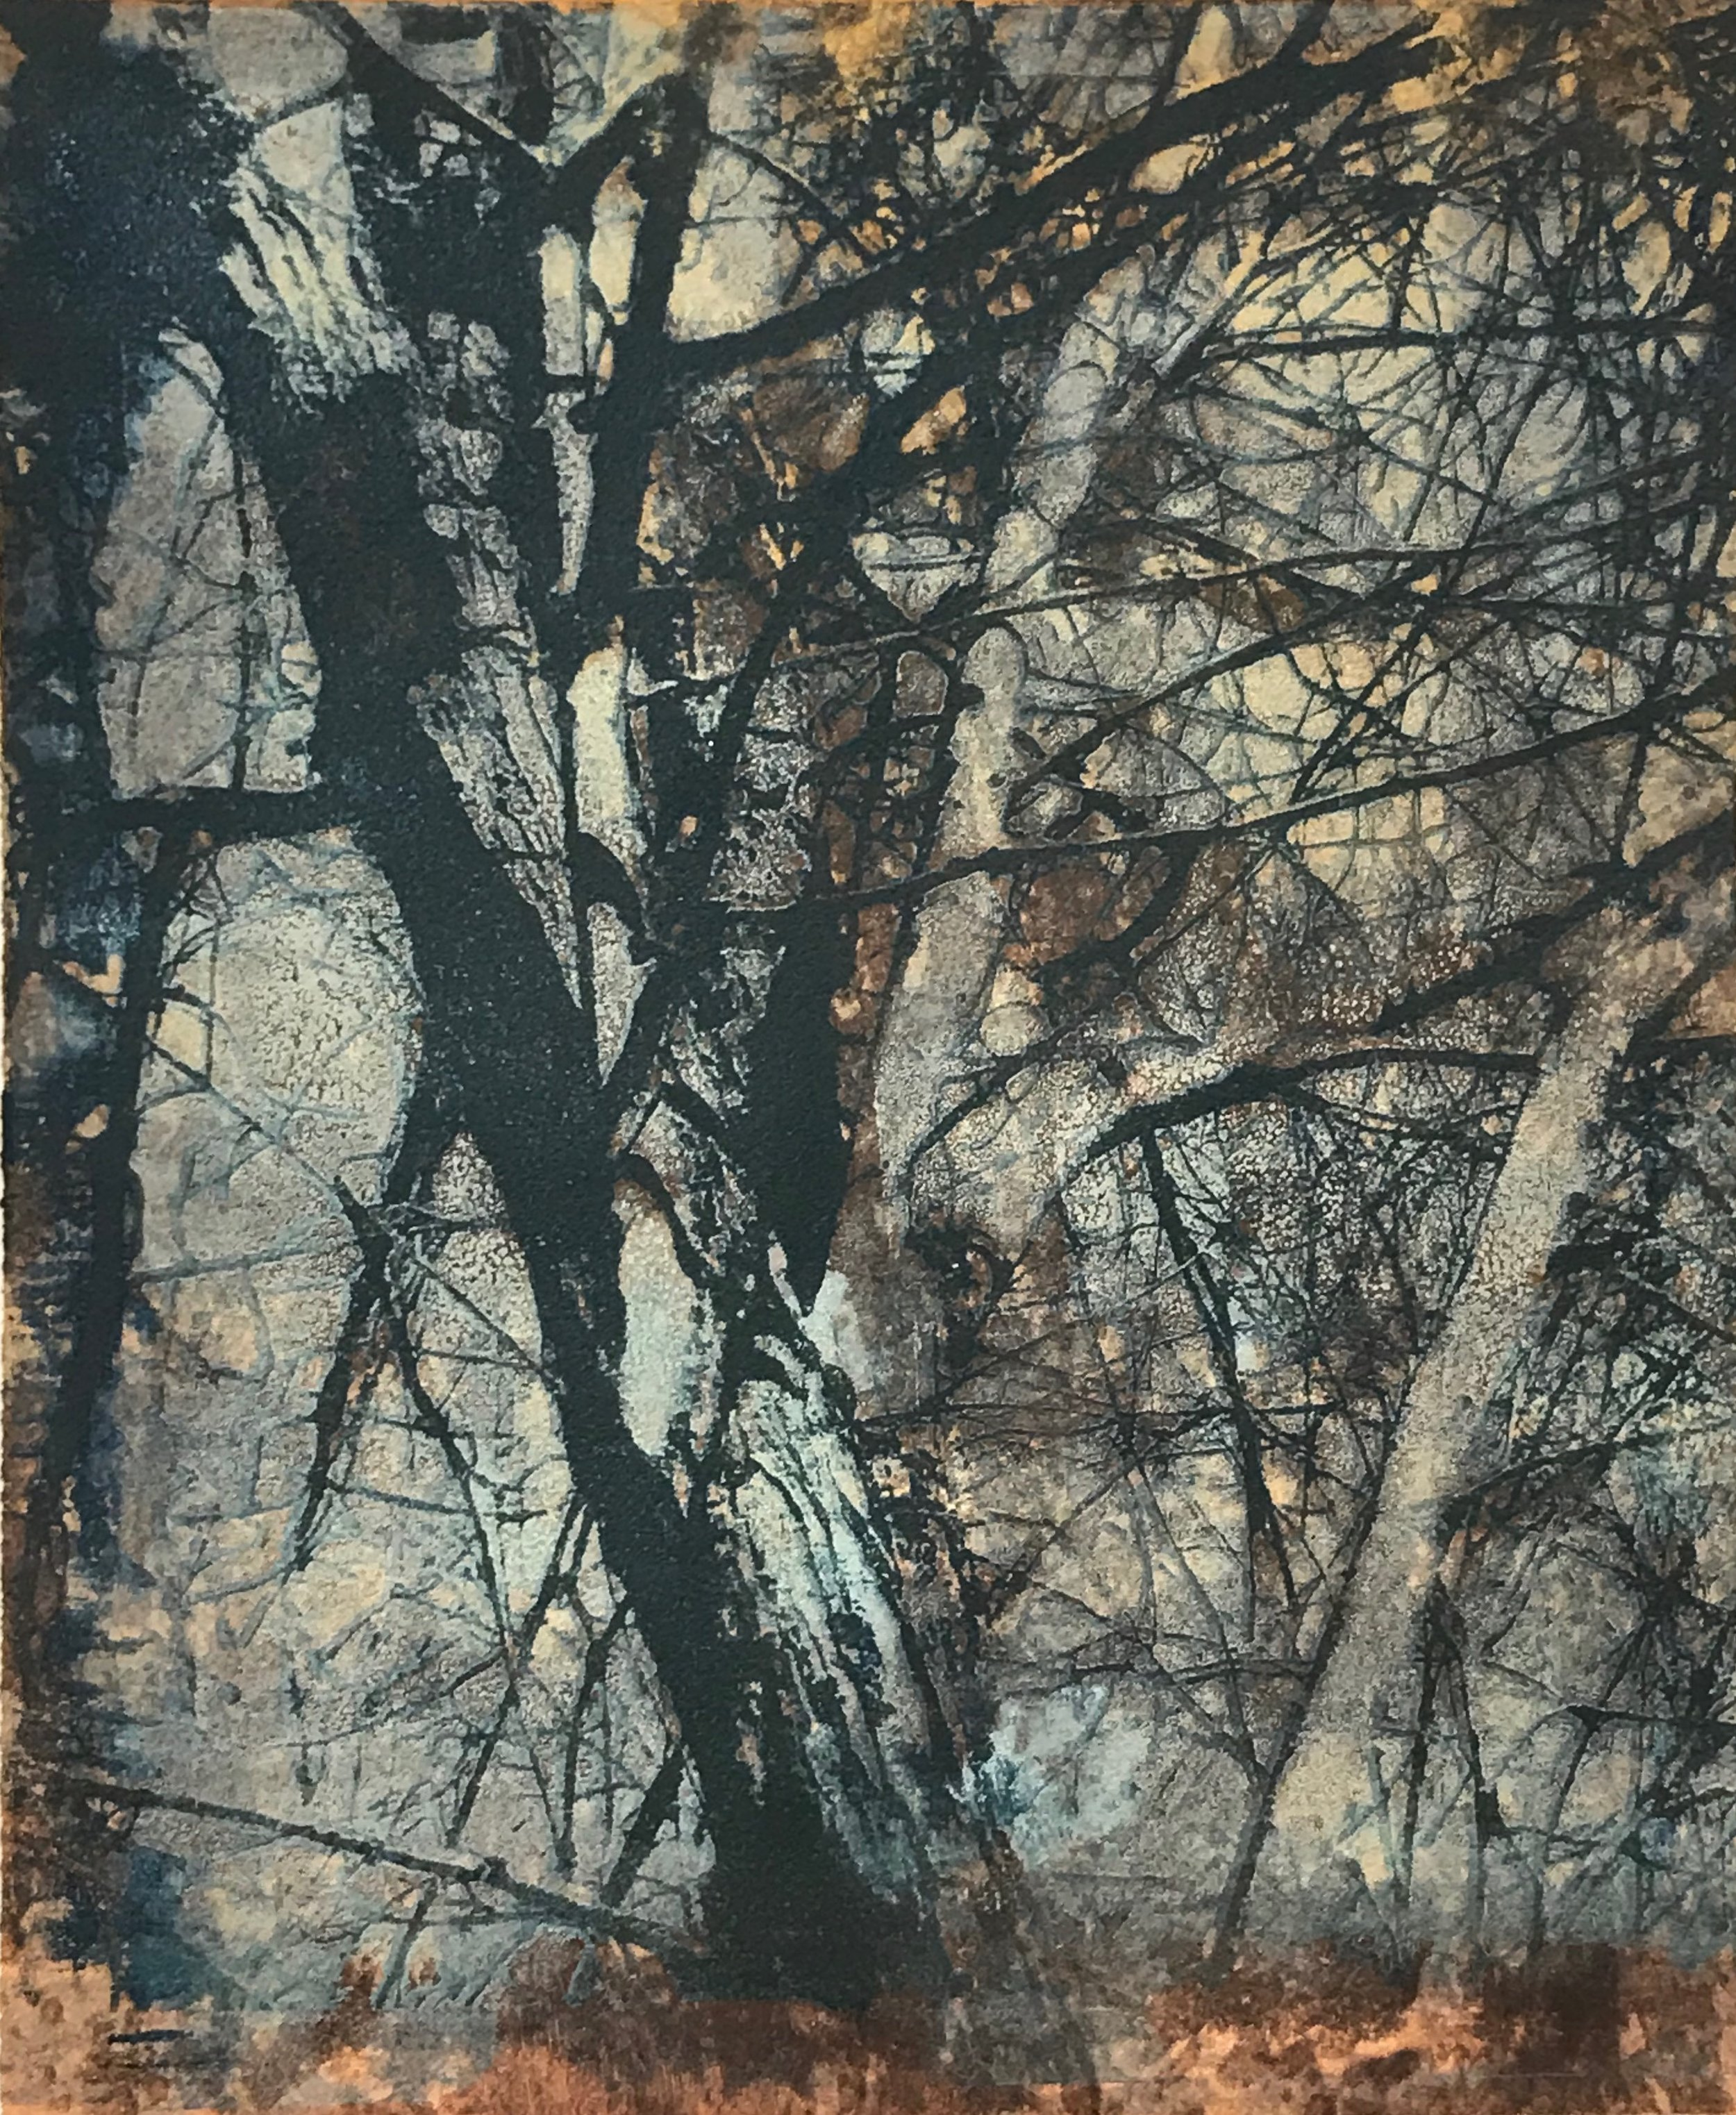 """Autumn Frost"", monoprint, 17"" x 14.5"", $300 (framed)"